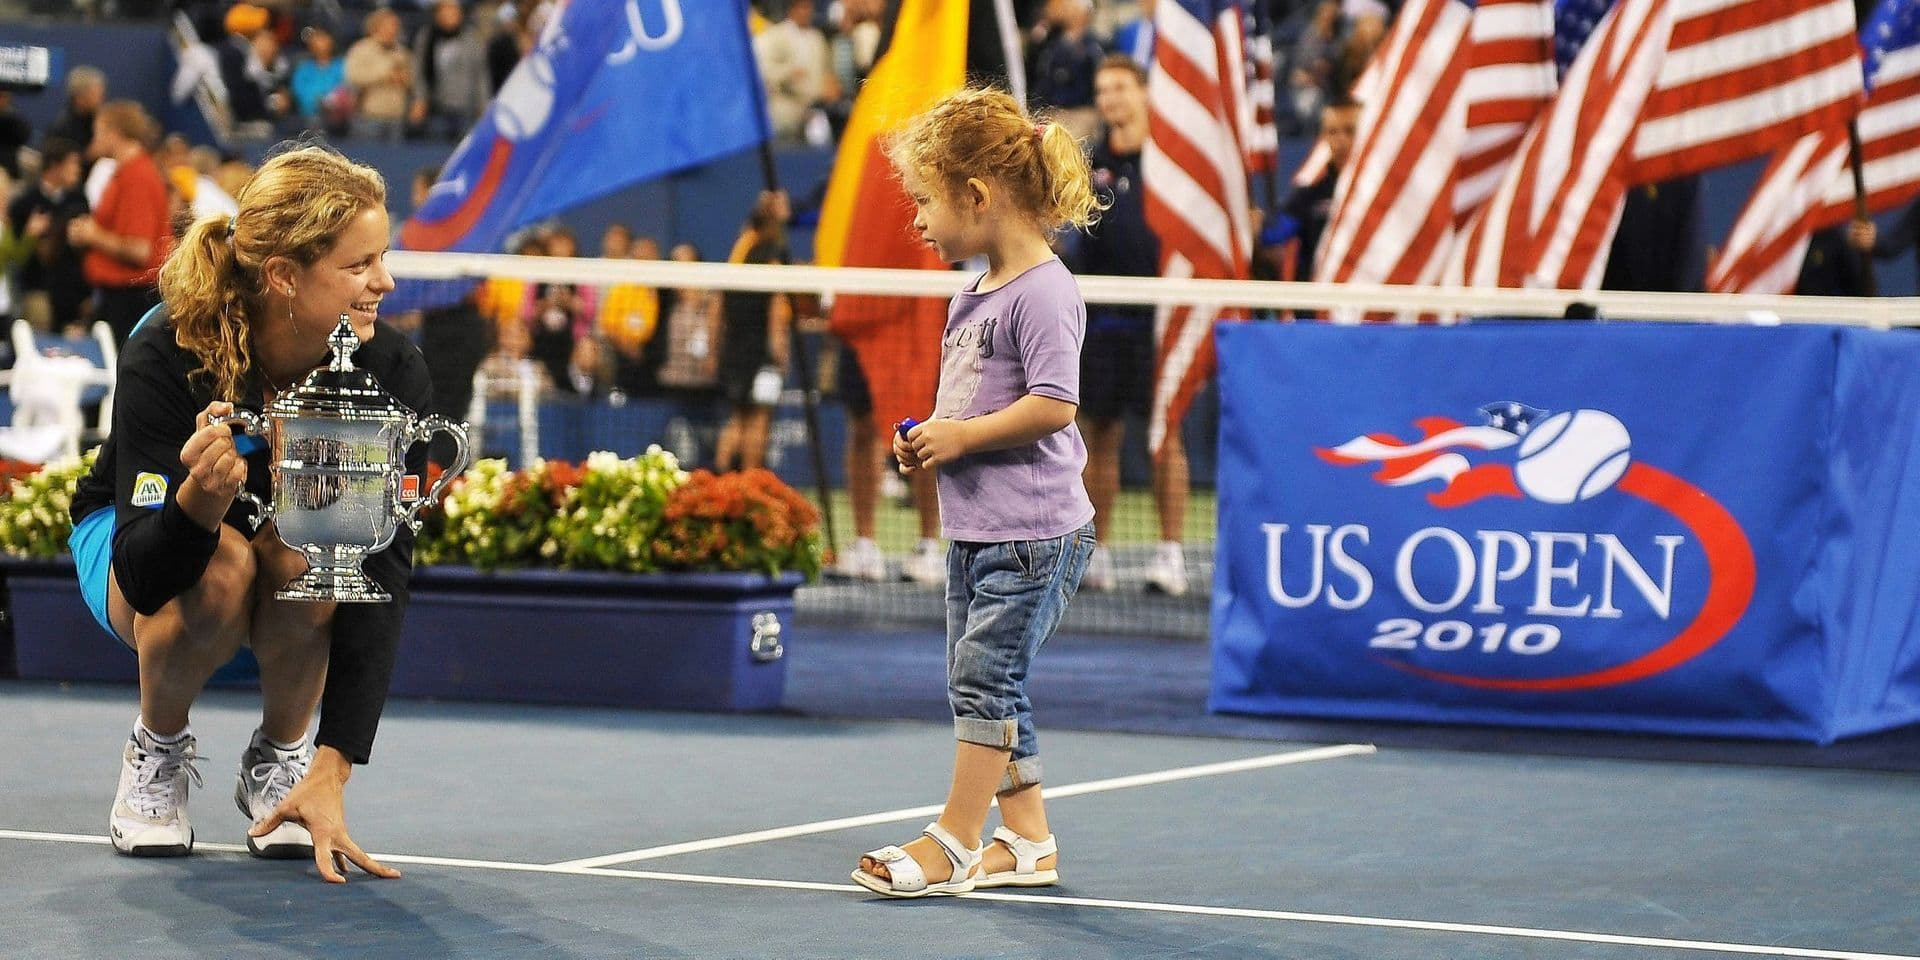 USA TENNIS US OPEN CLIJSTERS FINAL